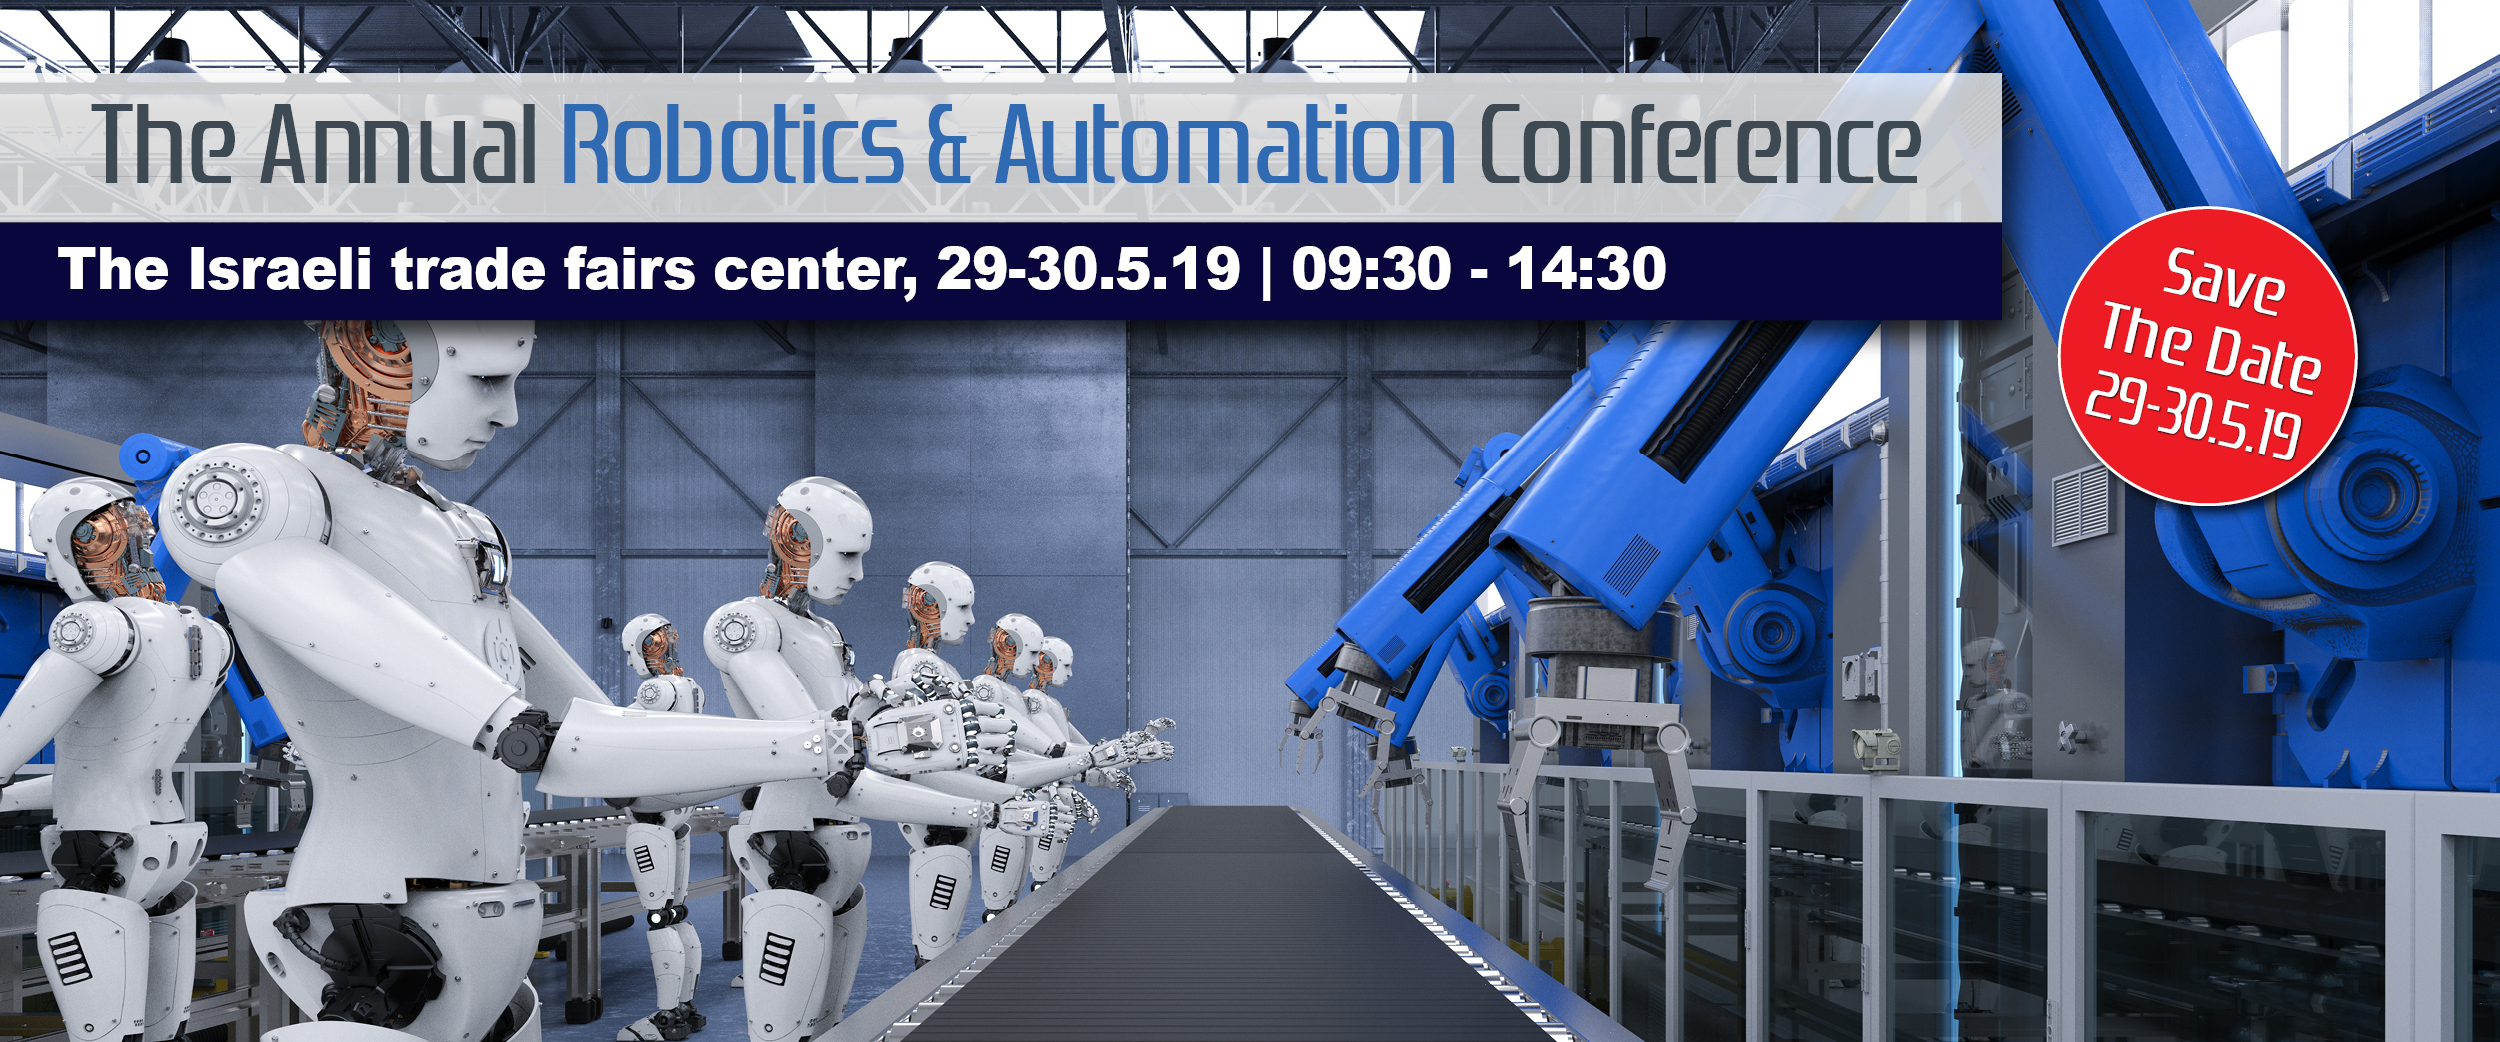 Annual Robotics & Automation Conference